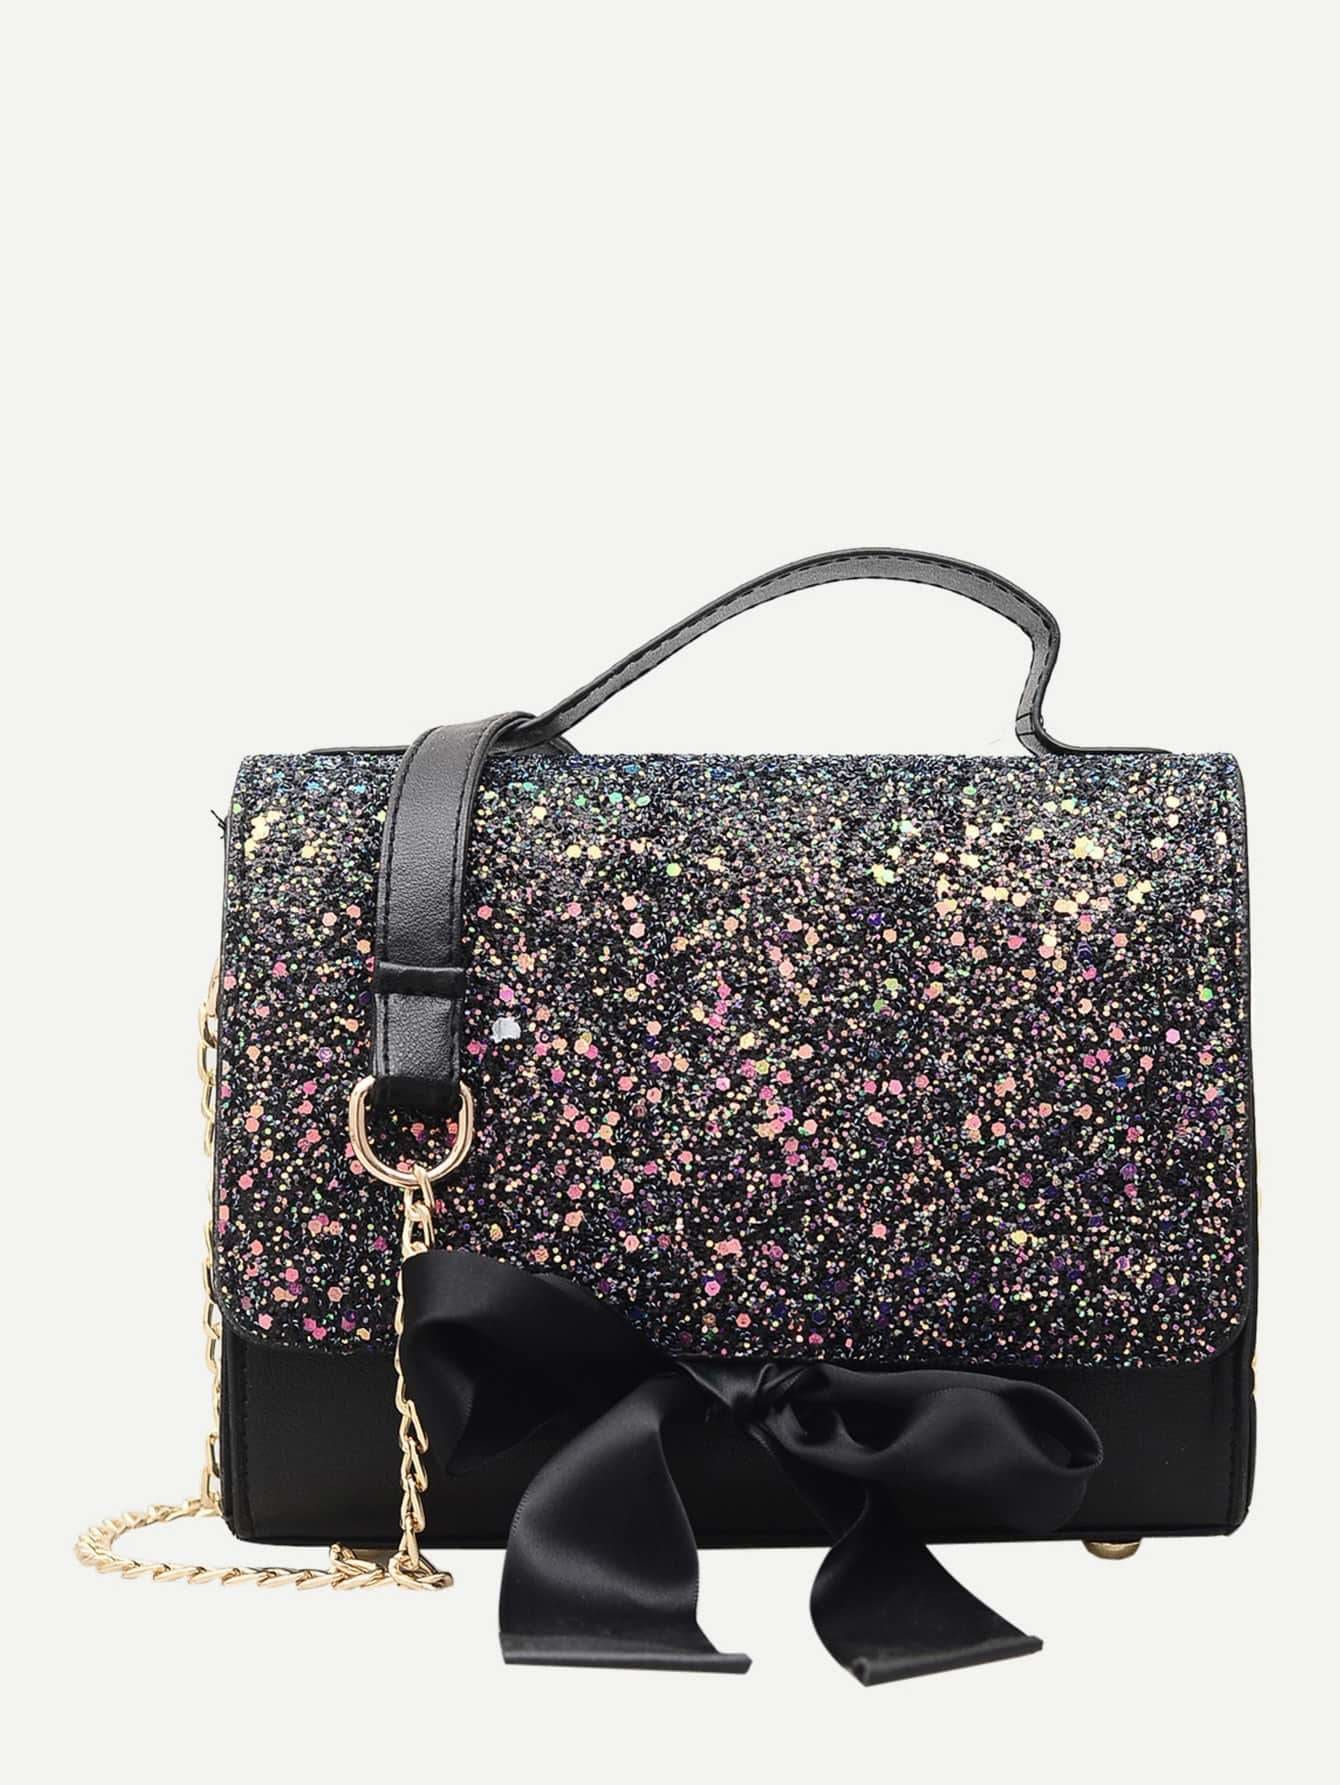 Bow Tie Glitter Chain Bag